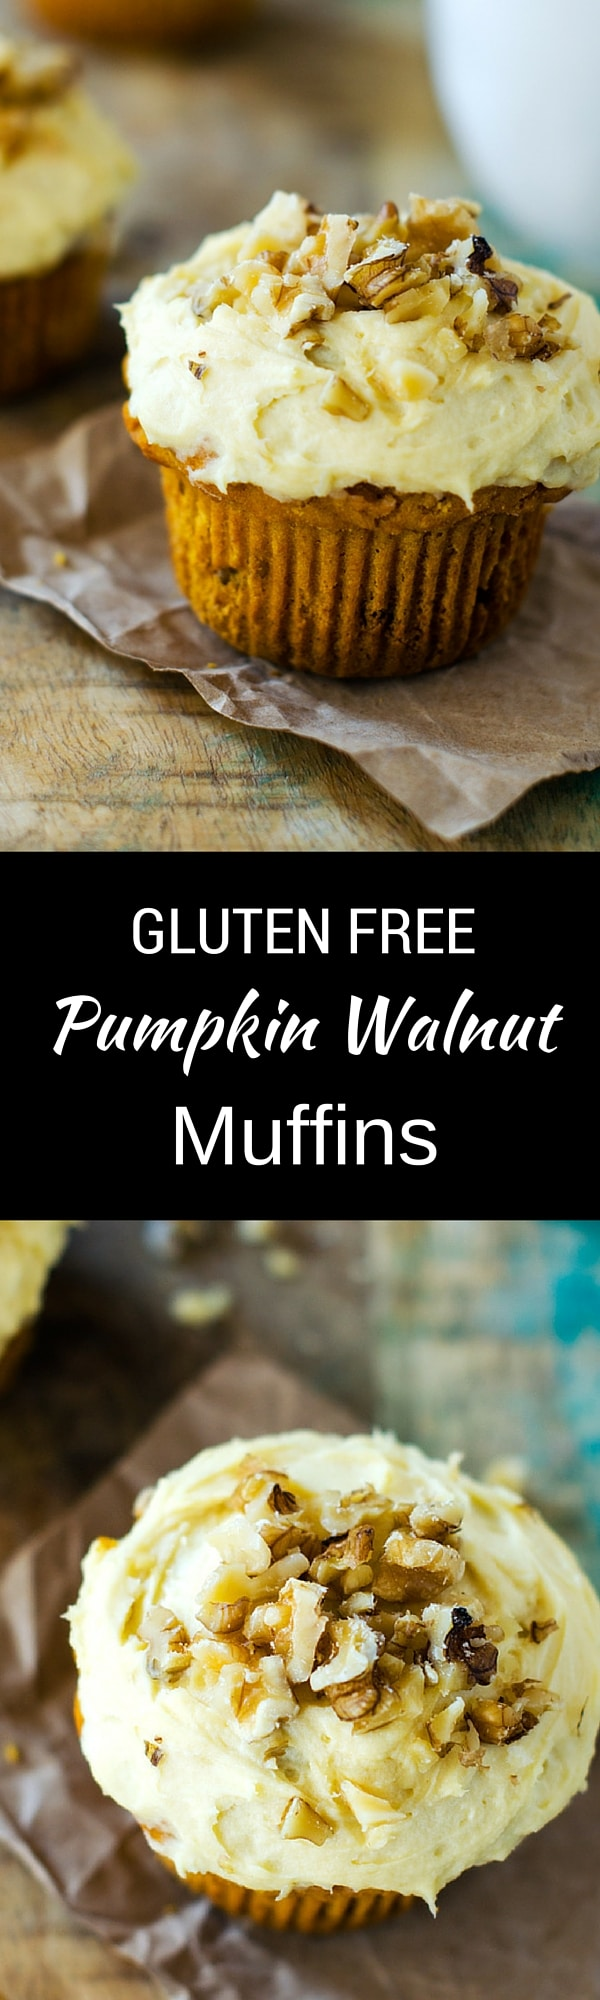 Gluten Free Pumpkin Walnut Muffins - These muffins an an amazing addition to your holiday brunch! So easy thanks to Bob's Red Mill 1-to-1 Baking Flour.